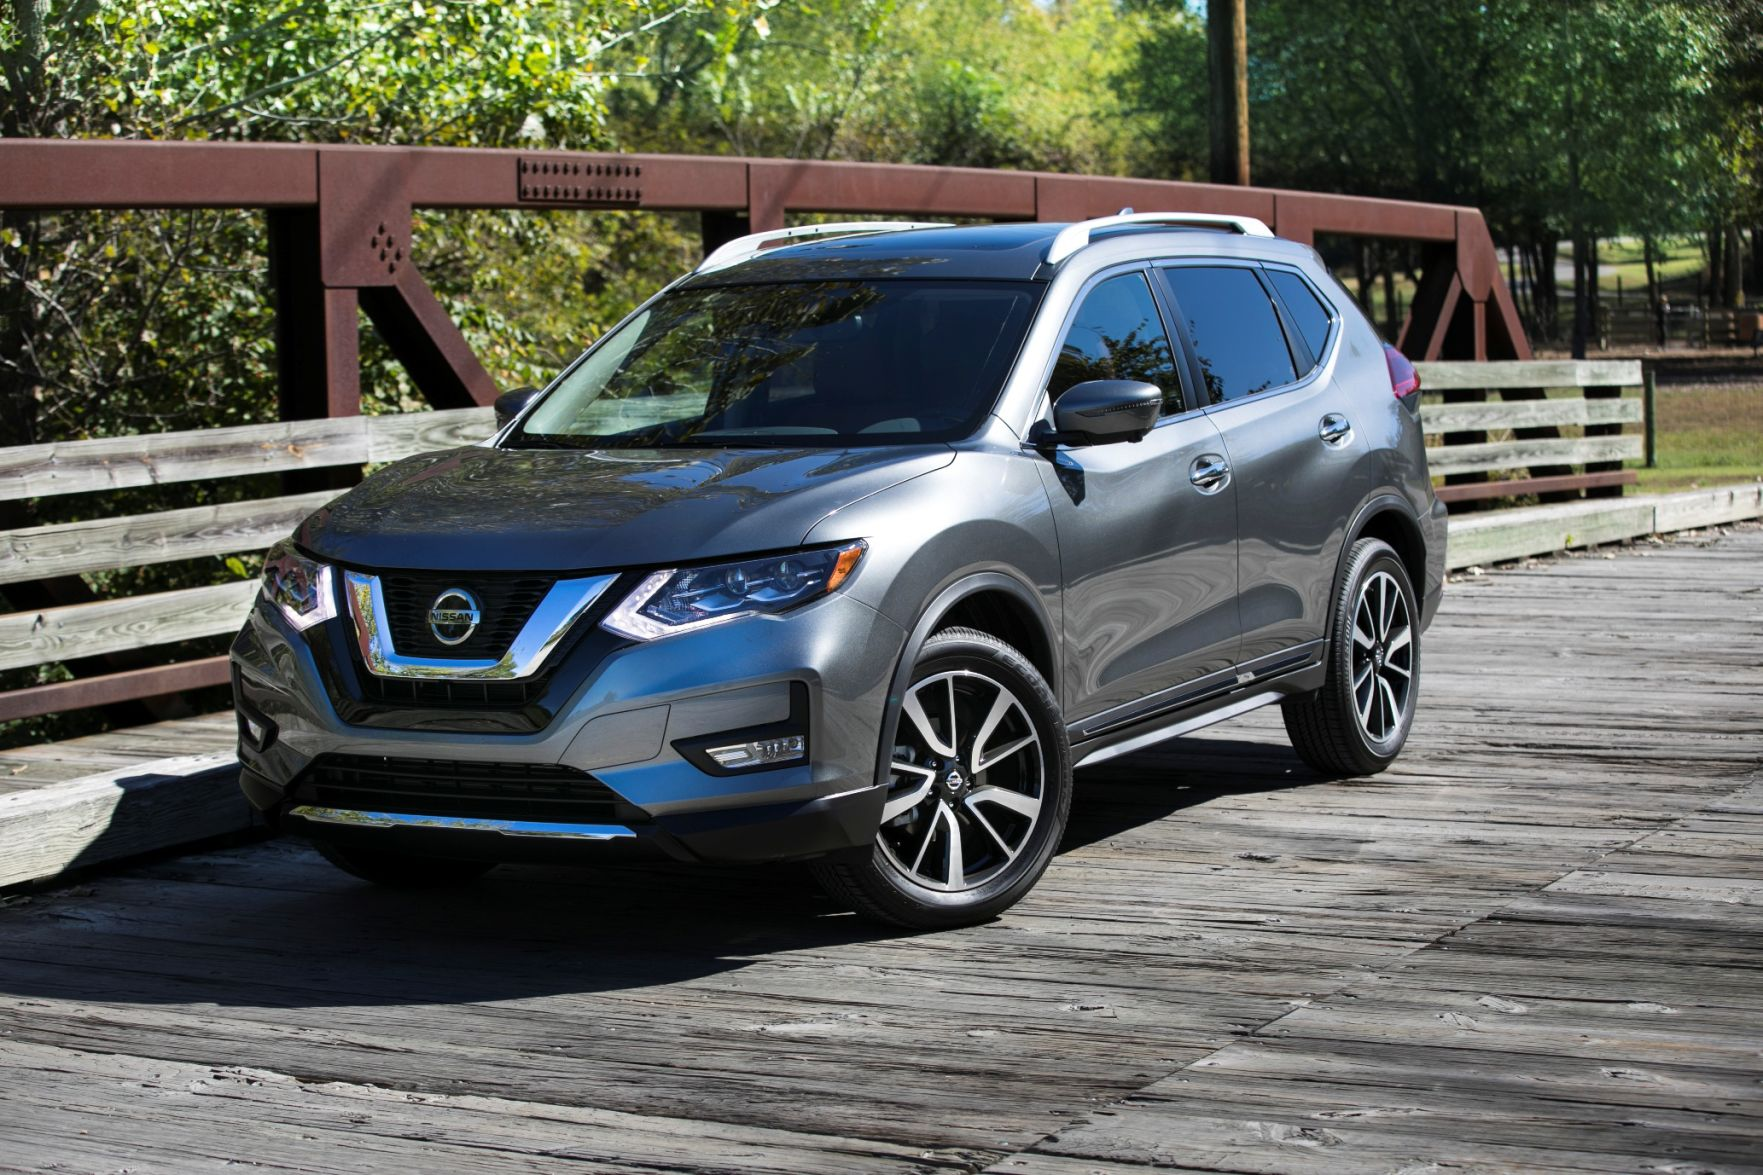 2018 nissan rogue active driver assist joins roster of options rh stltoday com